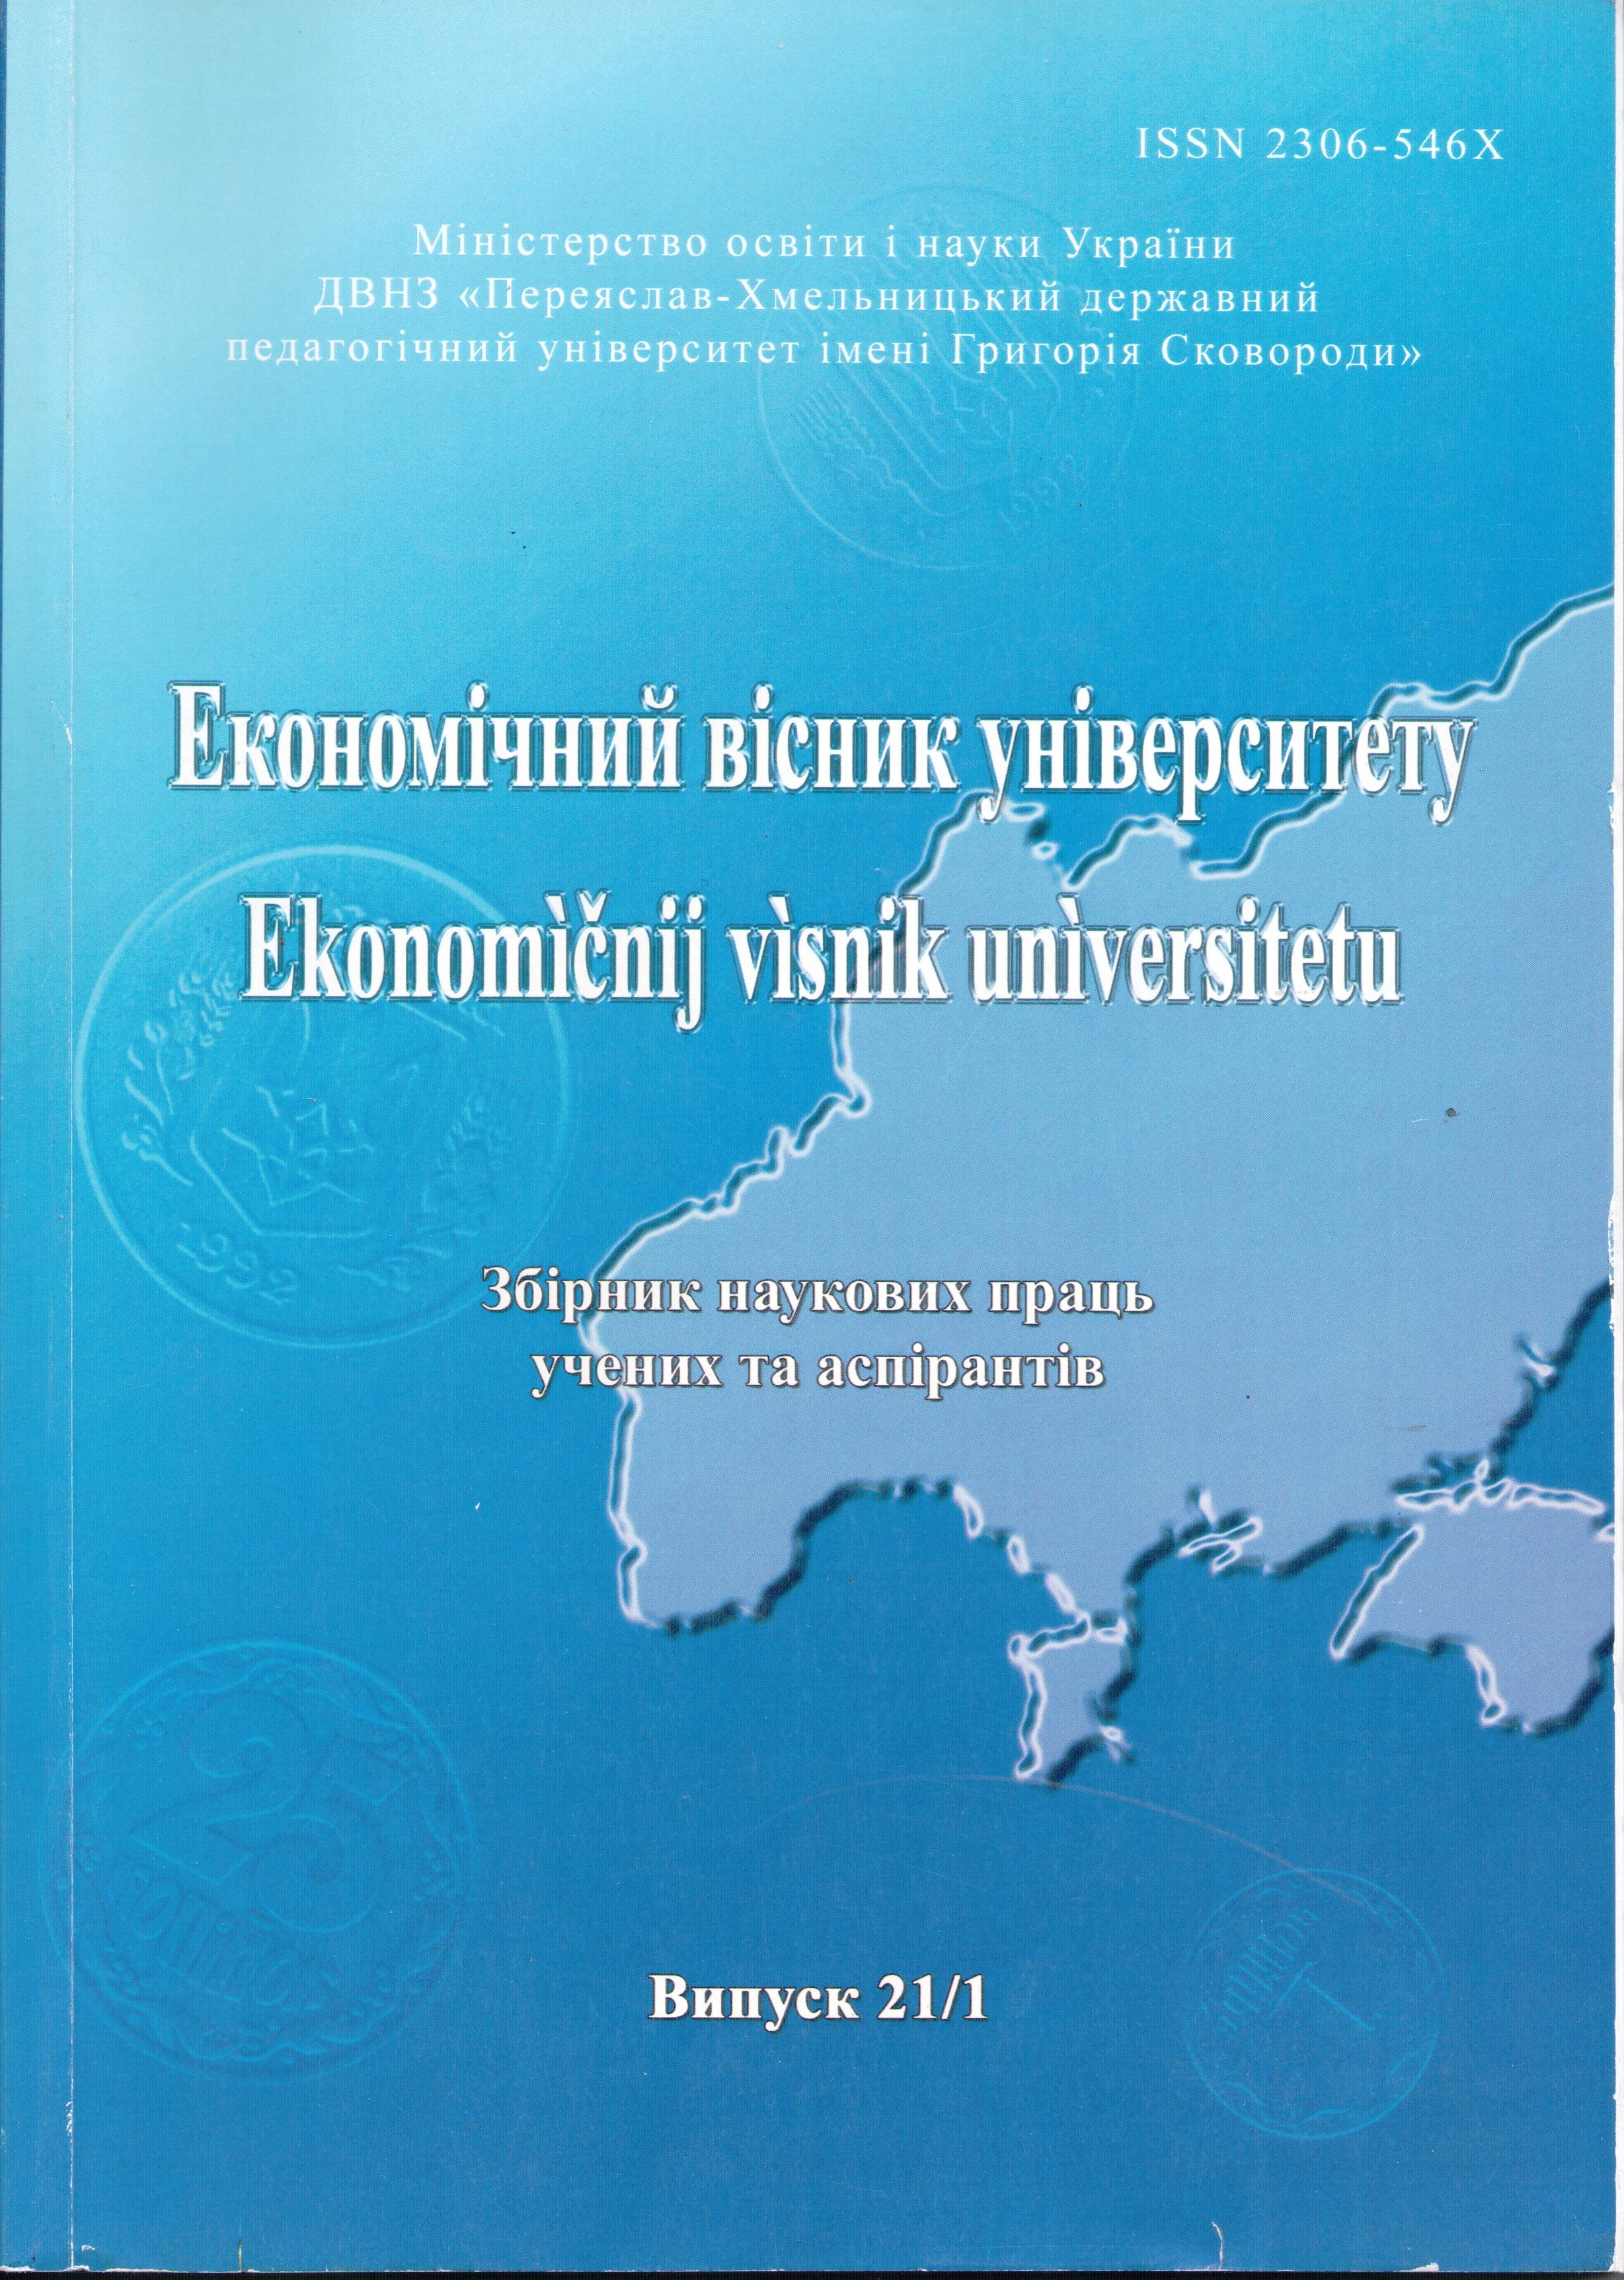 Ways and perspectives of restoring potential of food industry of Ukraine Cover Image